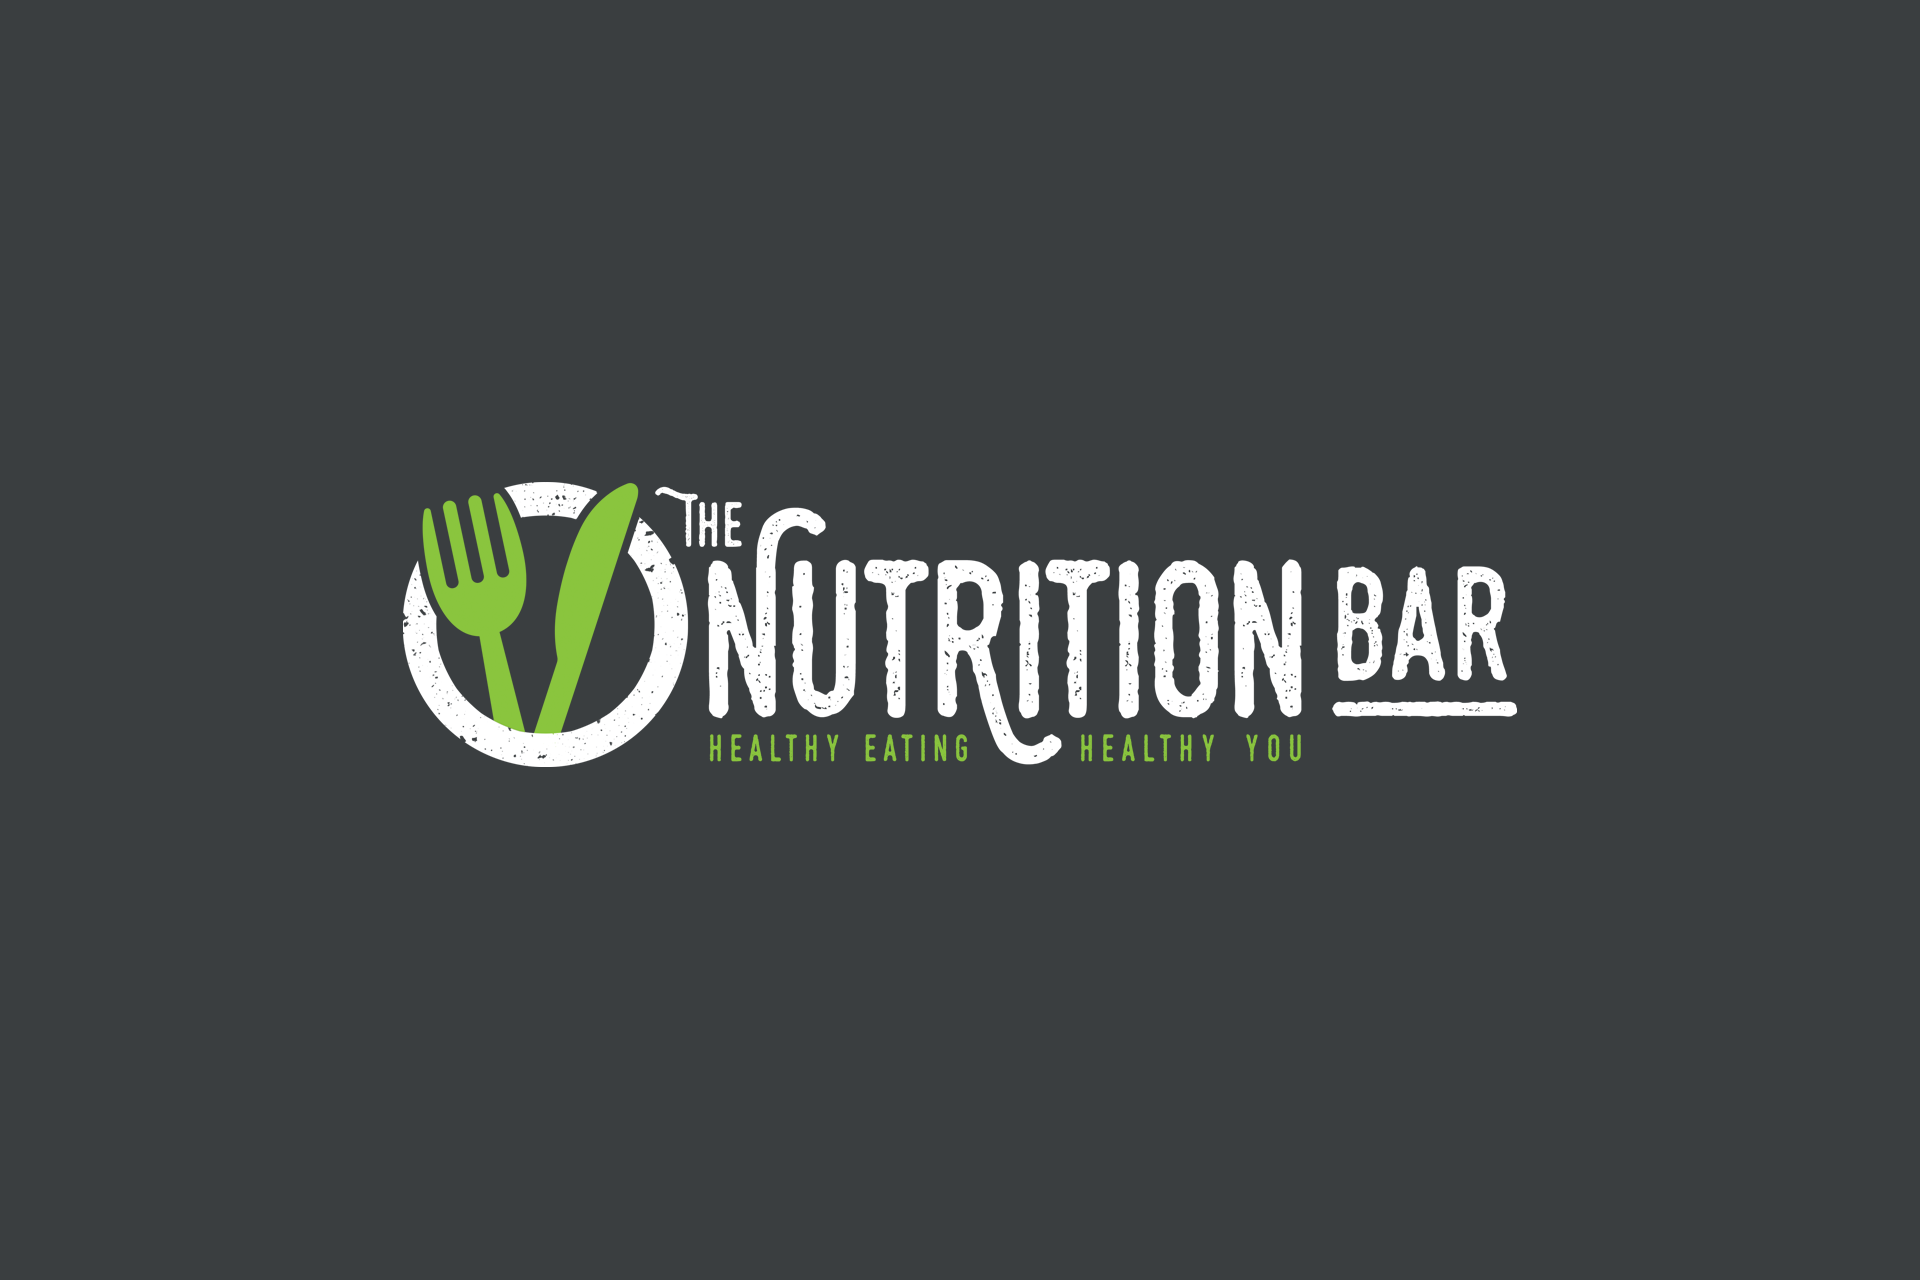 https://www.p360agency.co.uk/project/the-nutrition-bar/